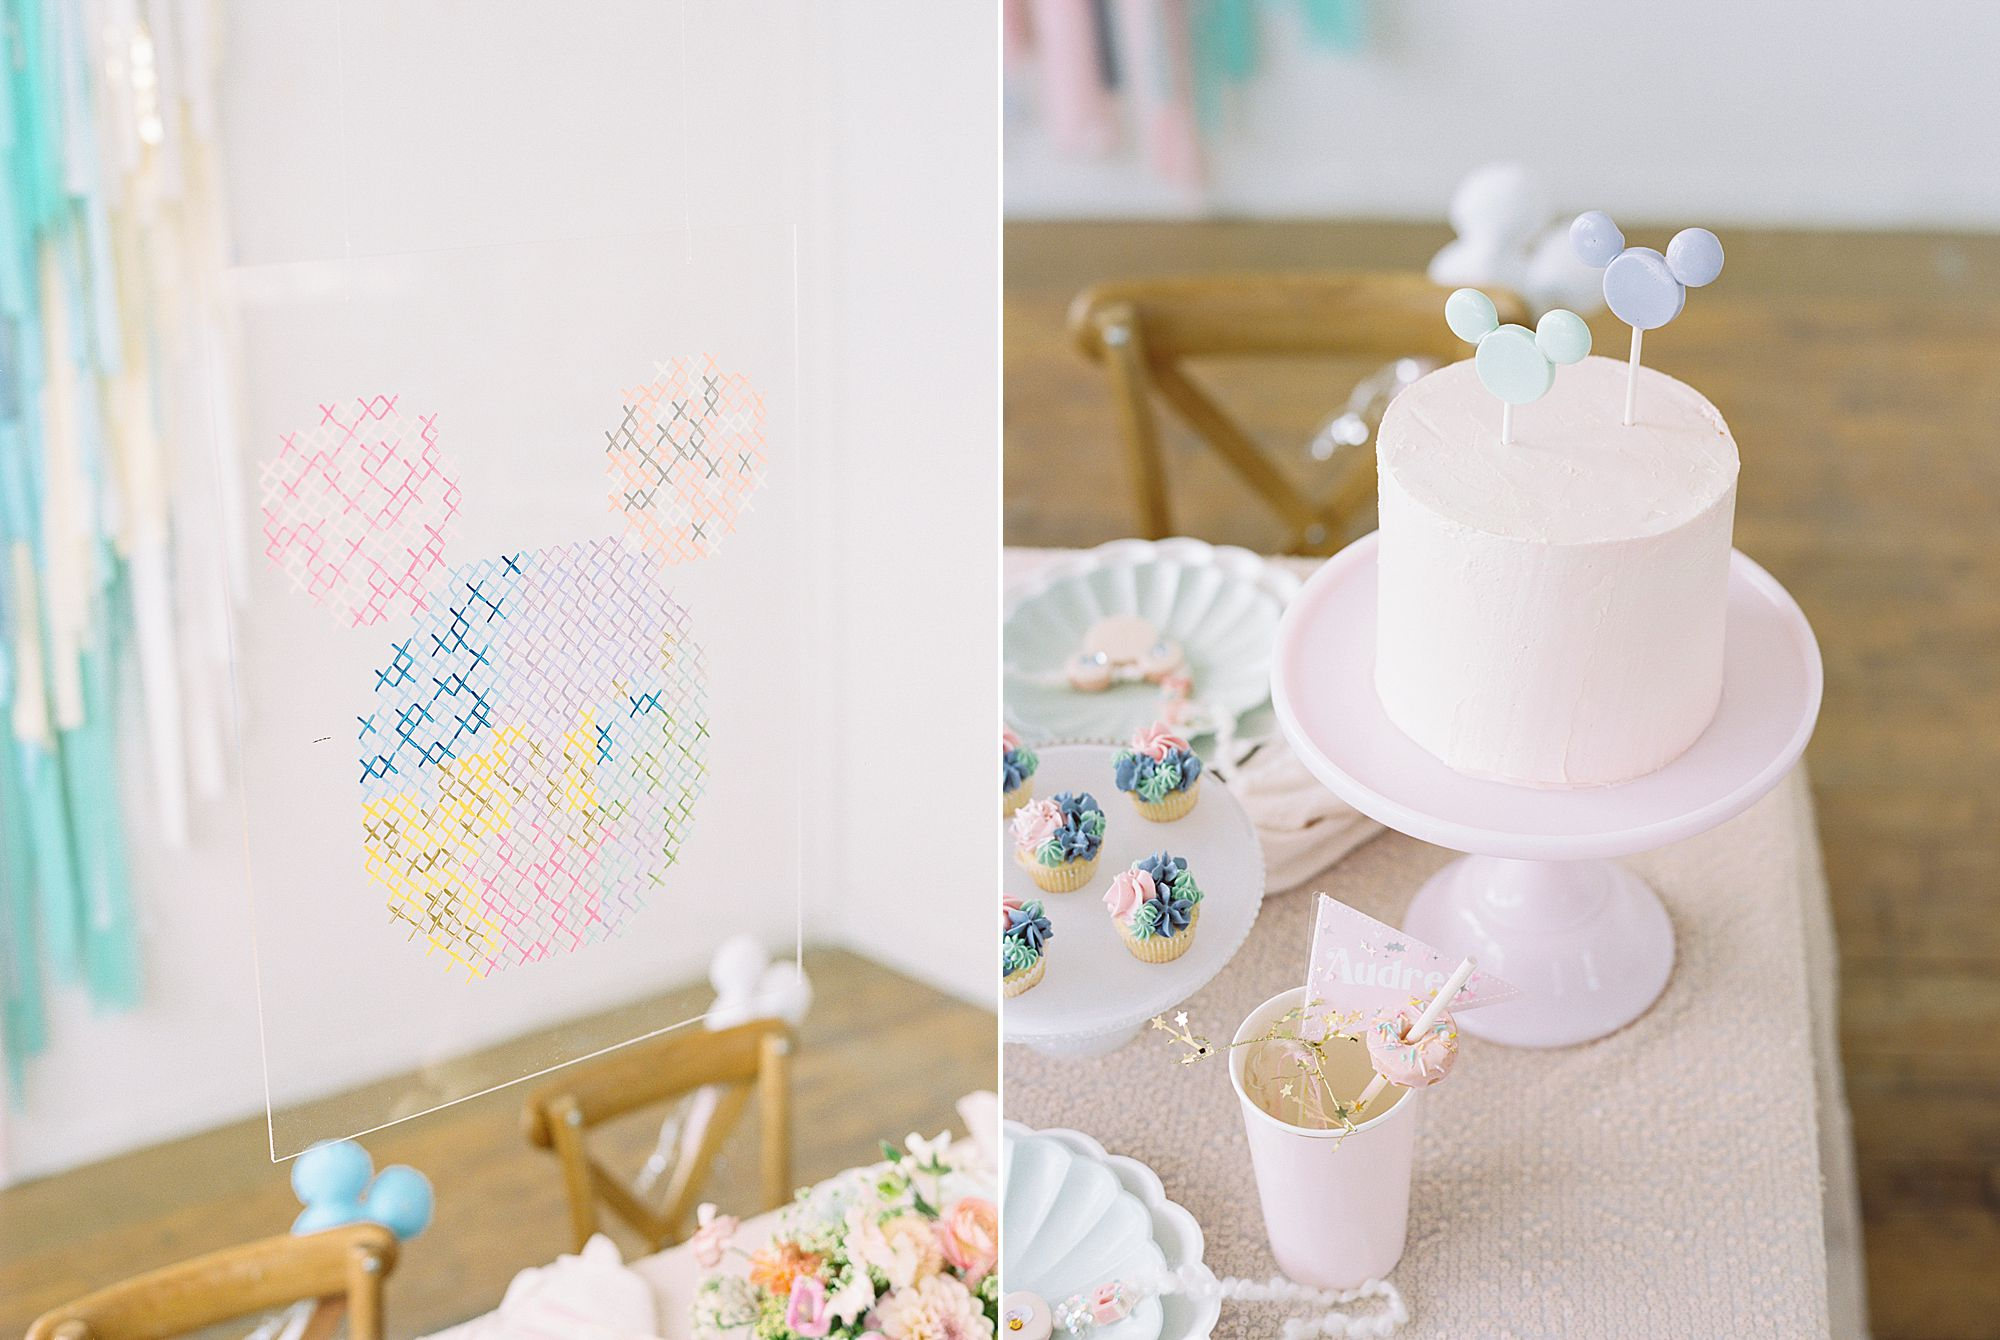 Vintage Disney Birthday Party for Princess Nora's Fourth Birthday - Featured on 100 Layer Cake - Ashley Baumgartner - Parker Grace Events_0014.jpg